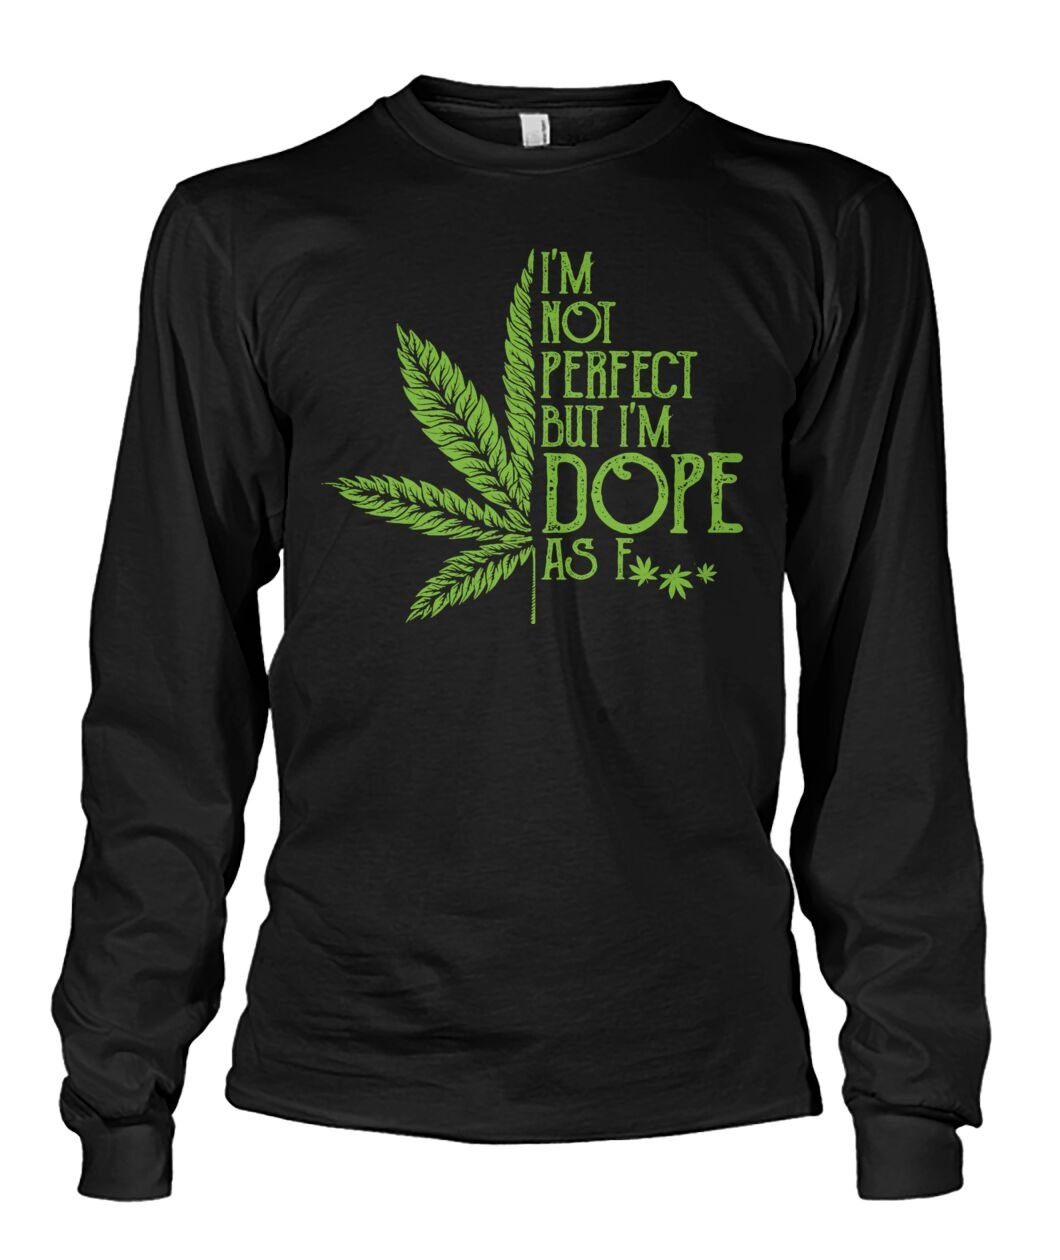 I'm Not Perfect But I'm Dope As Fuck Weed long sleeve